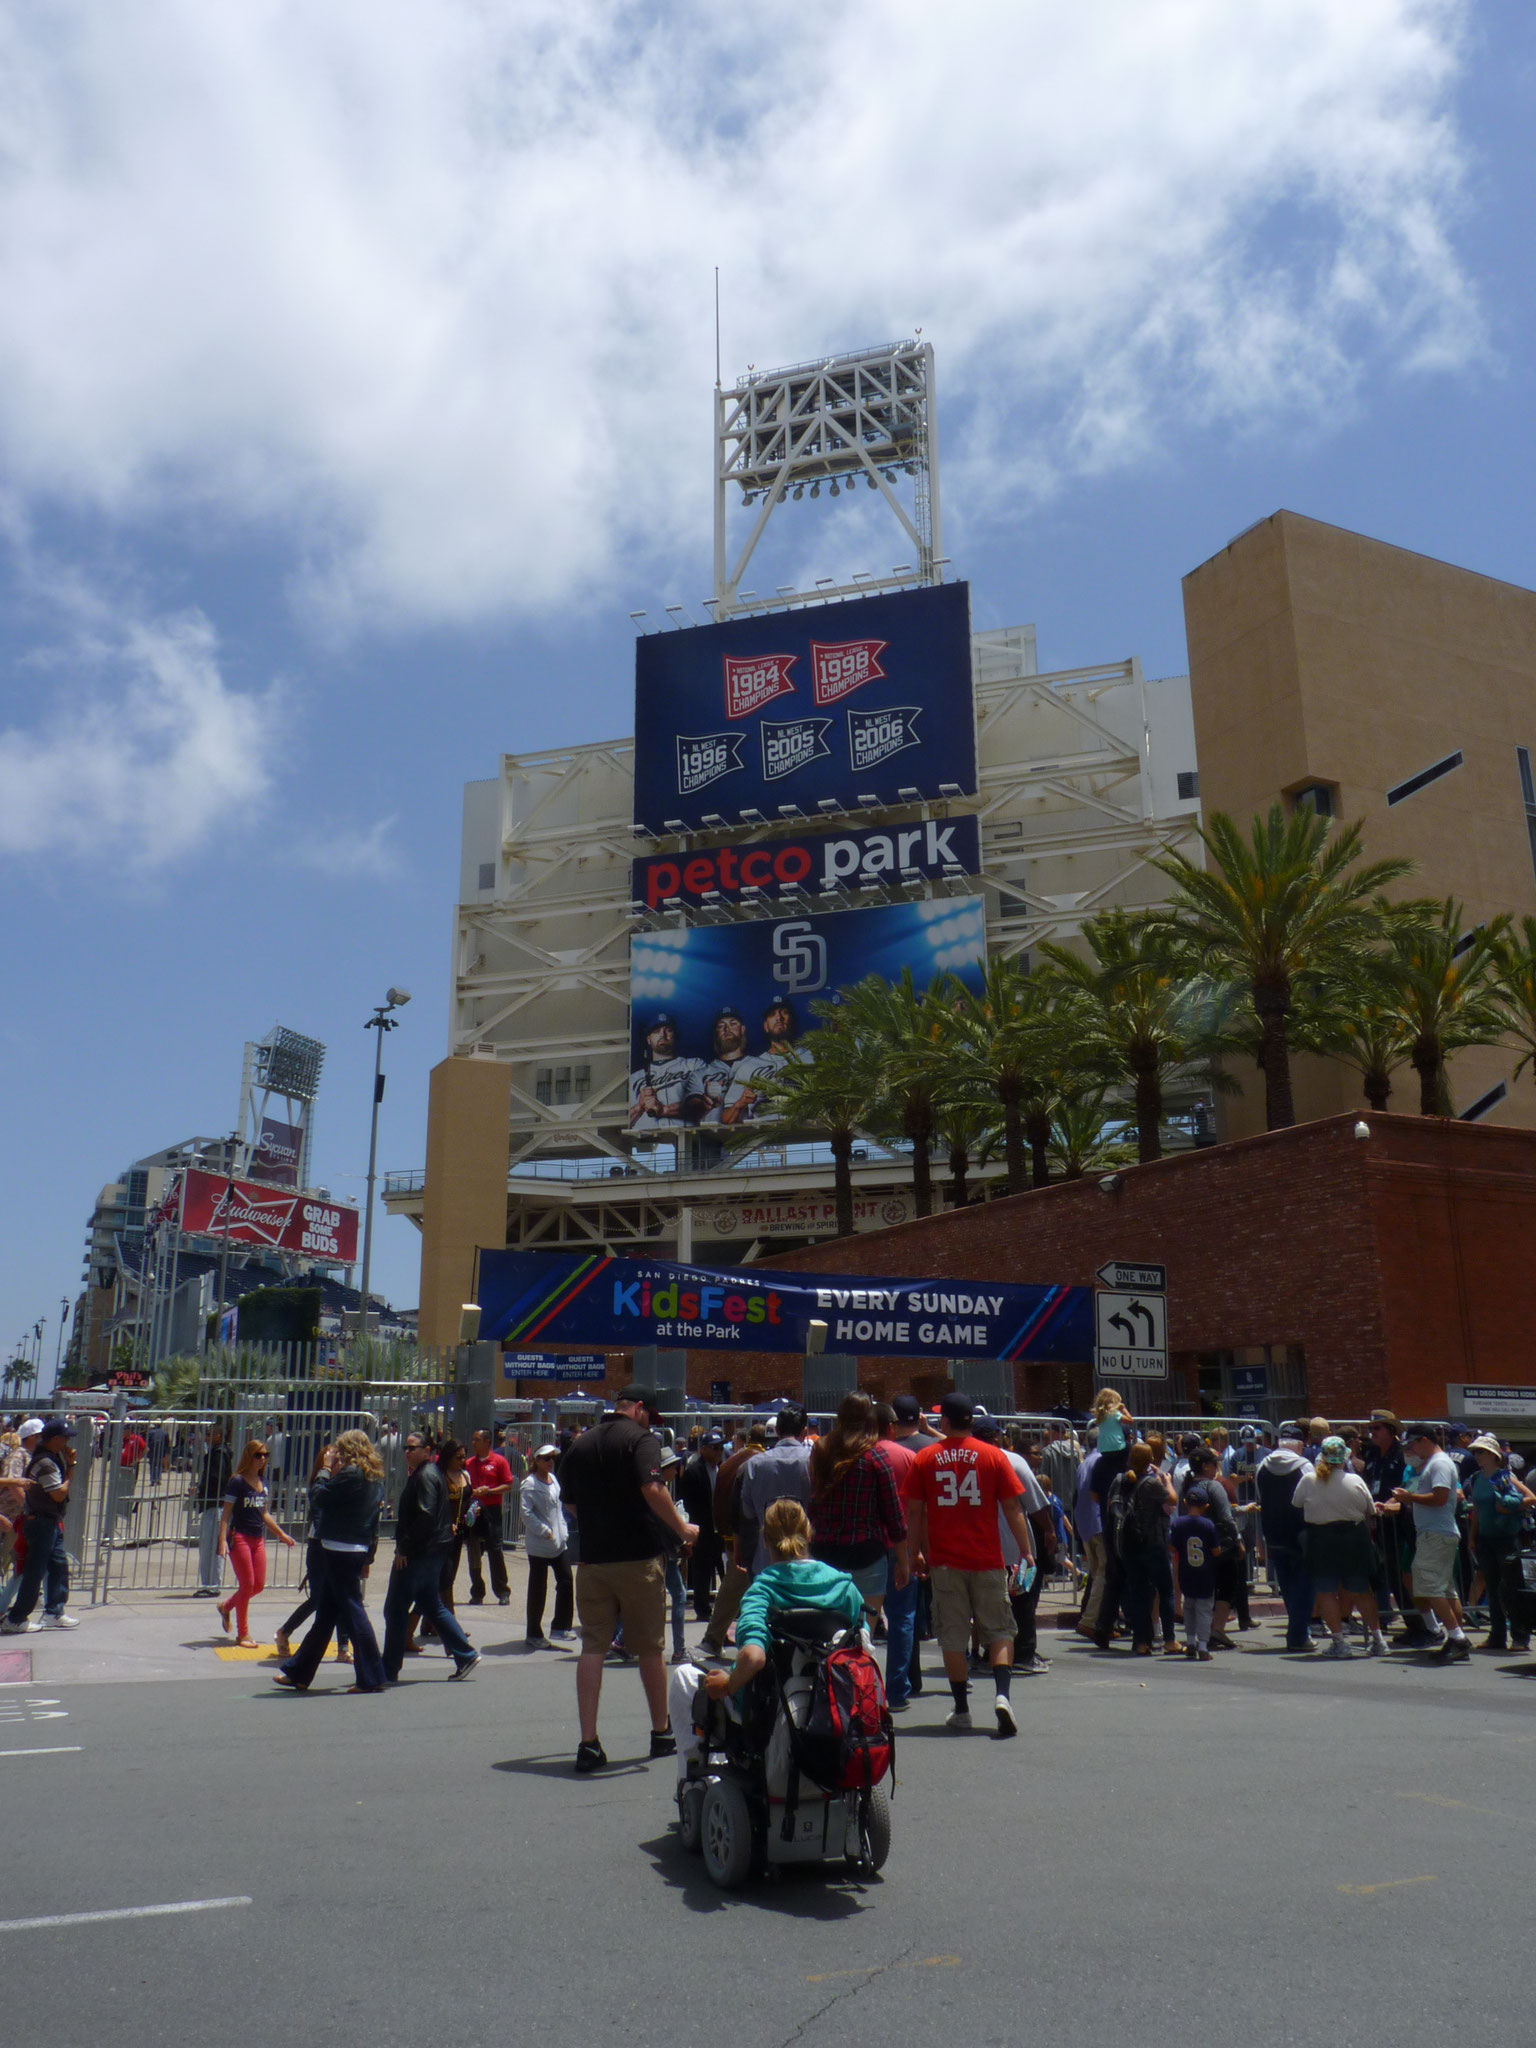 Entrée du Petco Park : San Diego Padres vs Washington Nationals (2015-16)